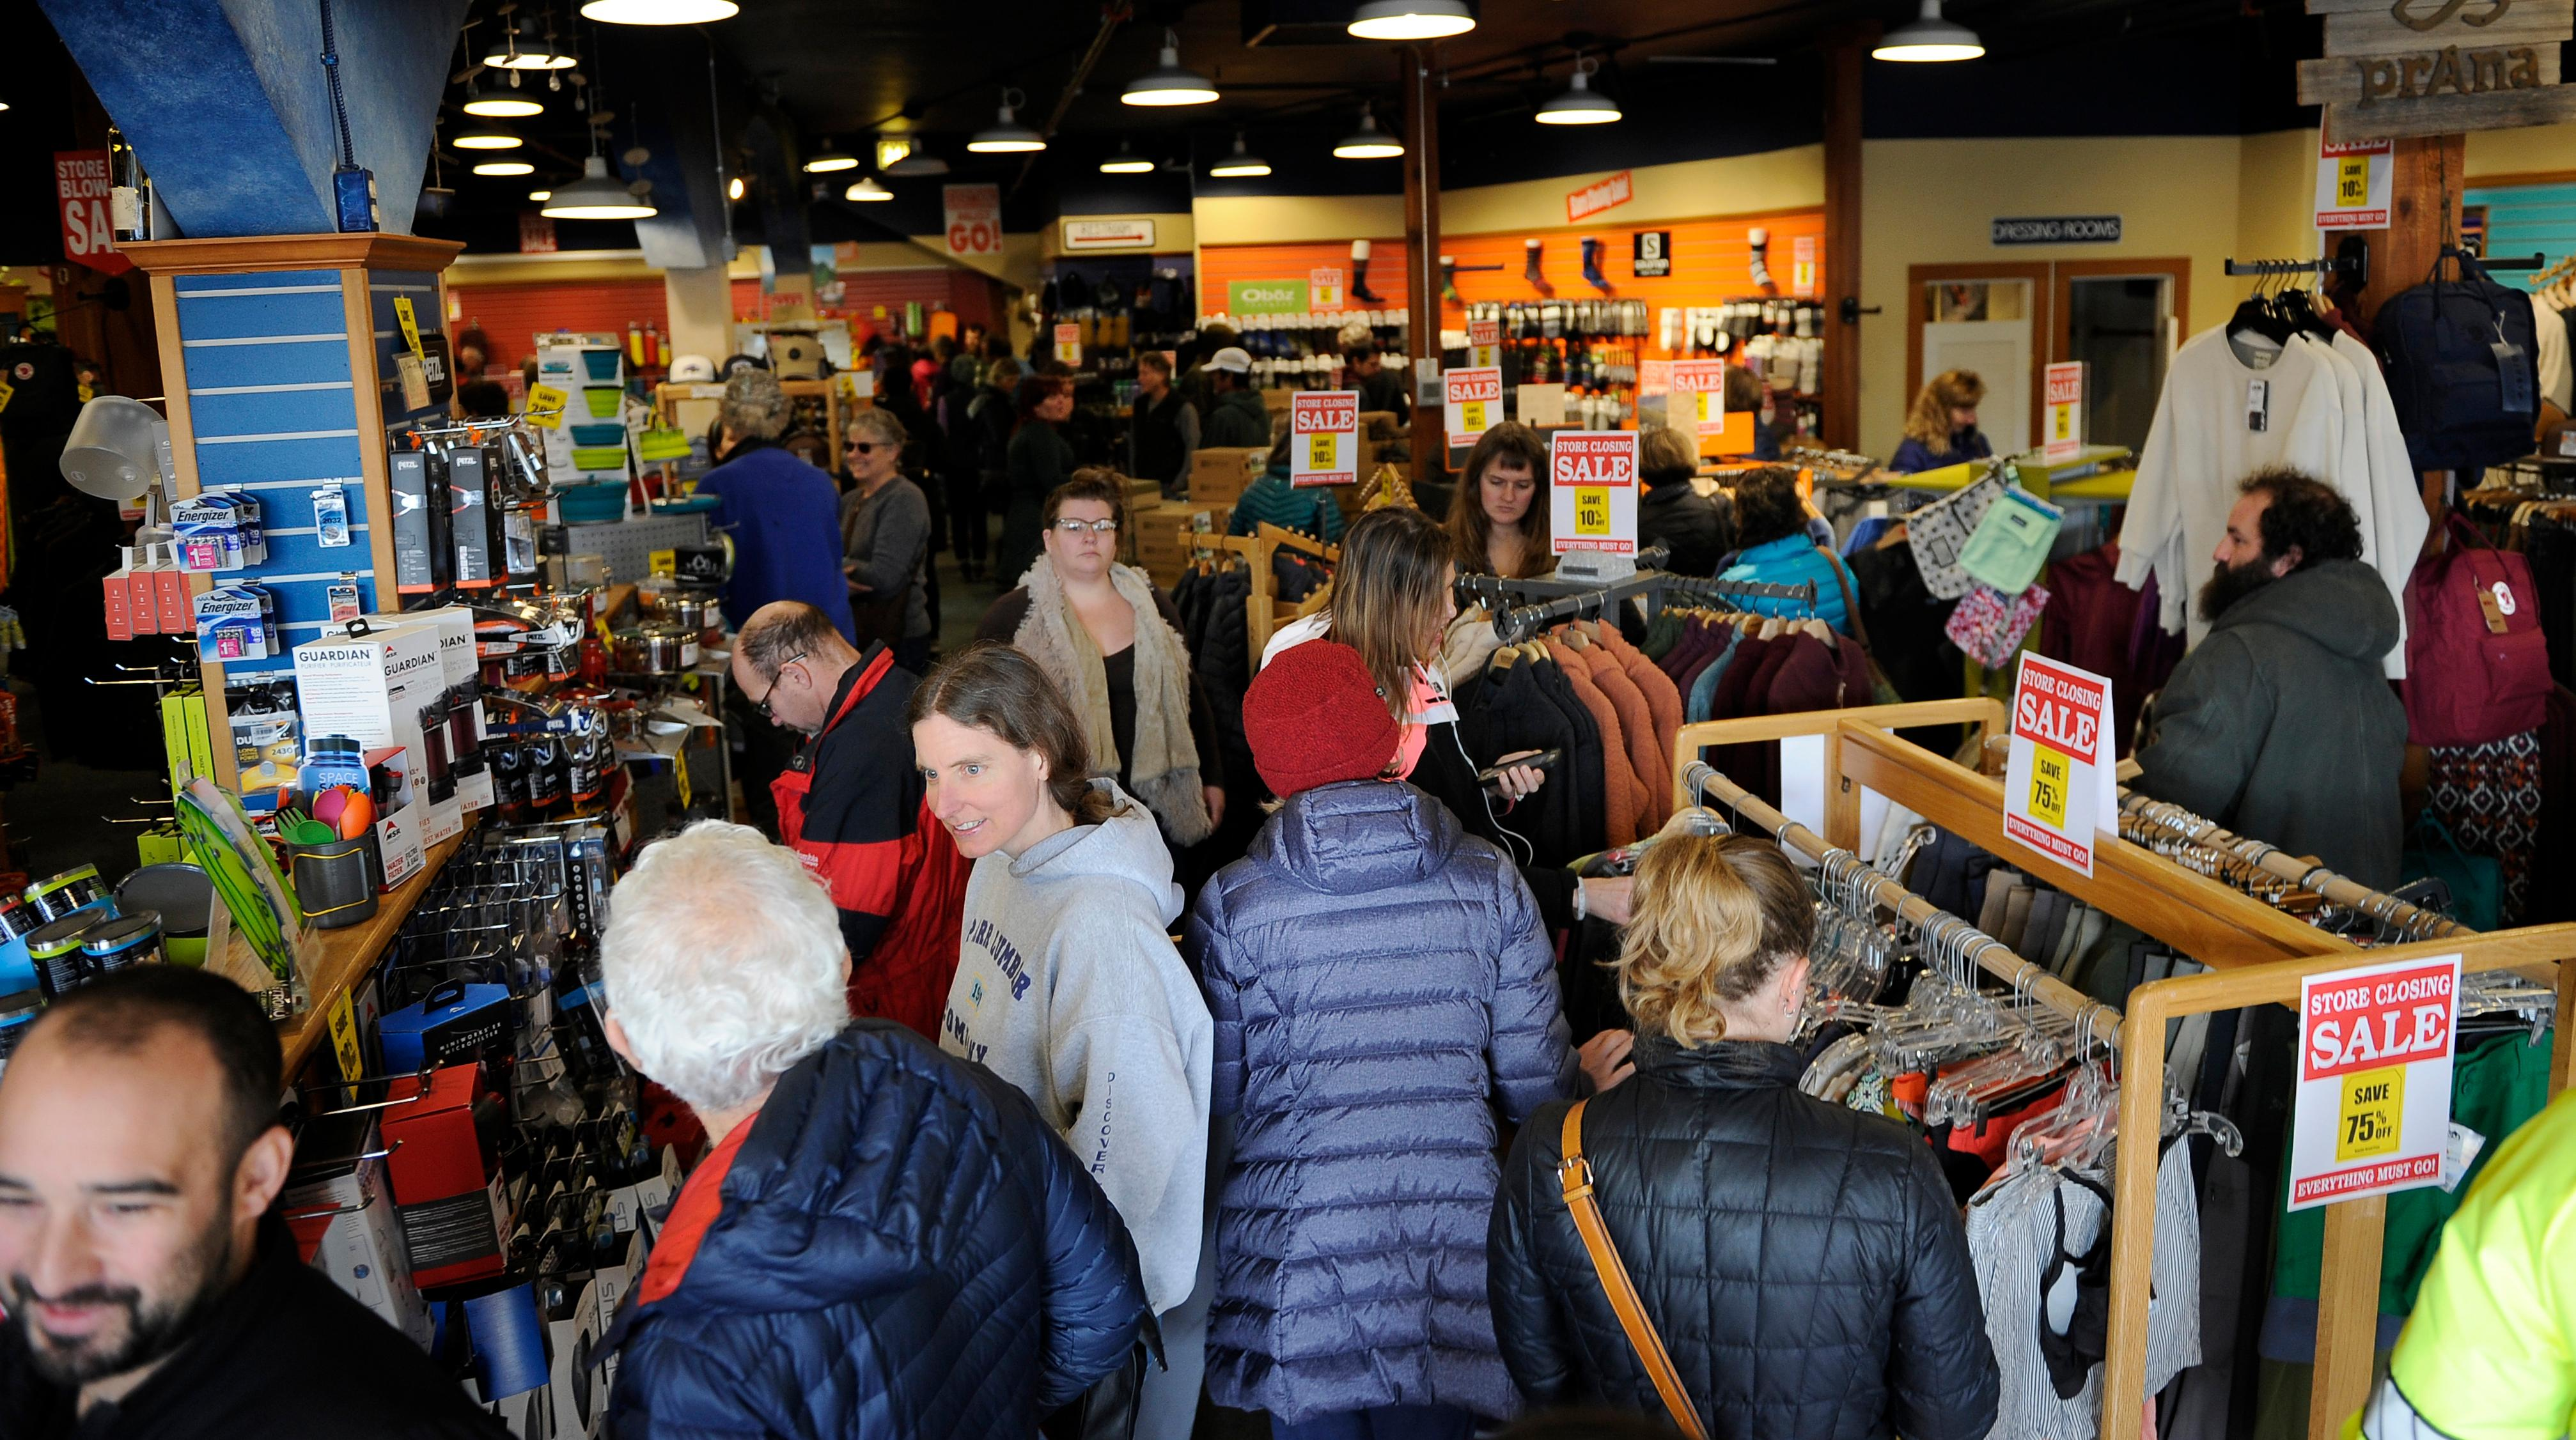 Andy Atkinson / Daily Tidings<br>Customers crowd into the Ashland Outdoor Store Wednesday morning for their liquidation sale before closing the doors.